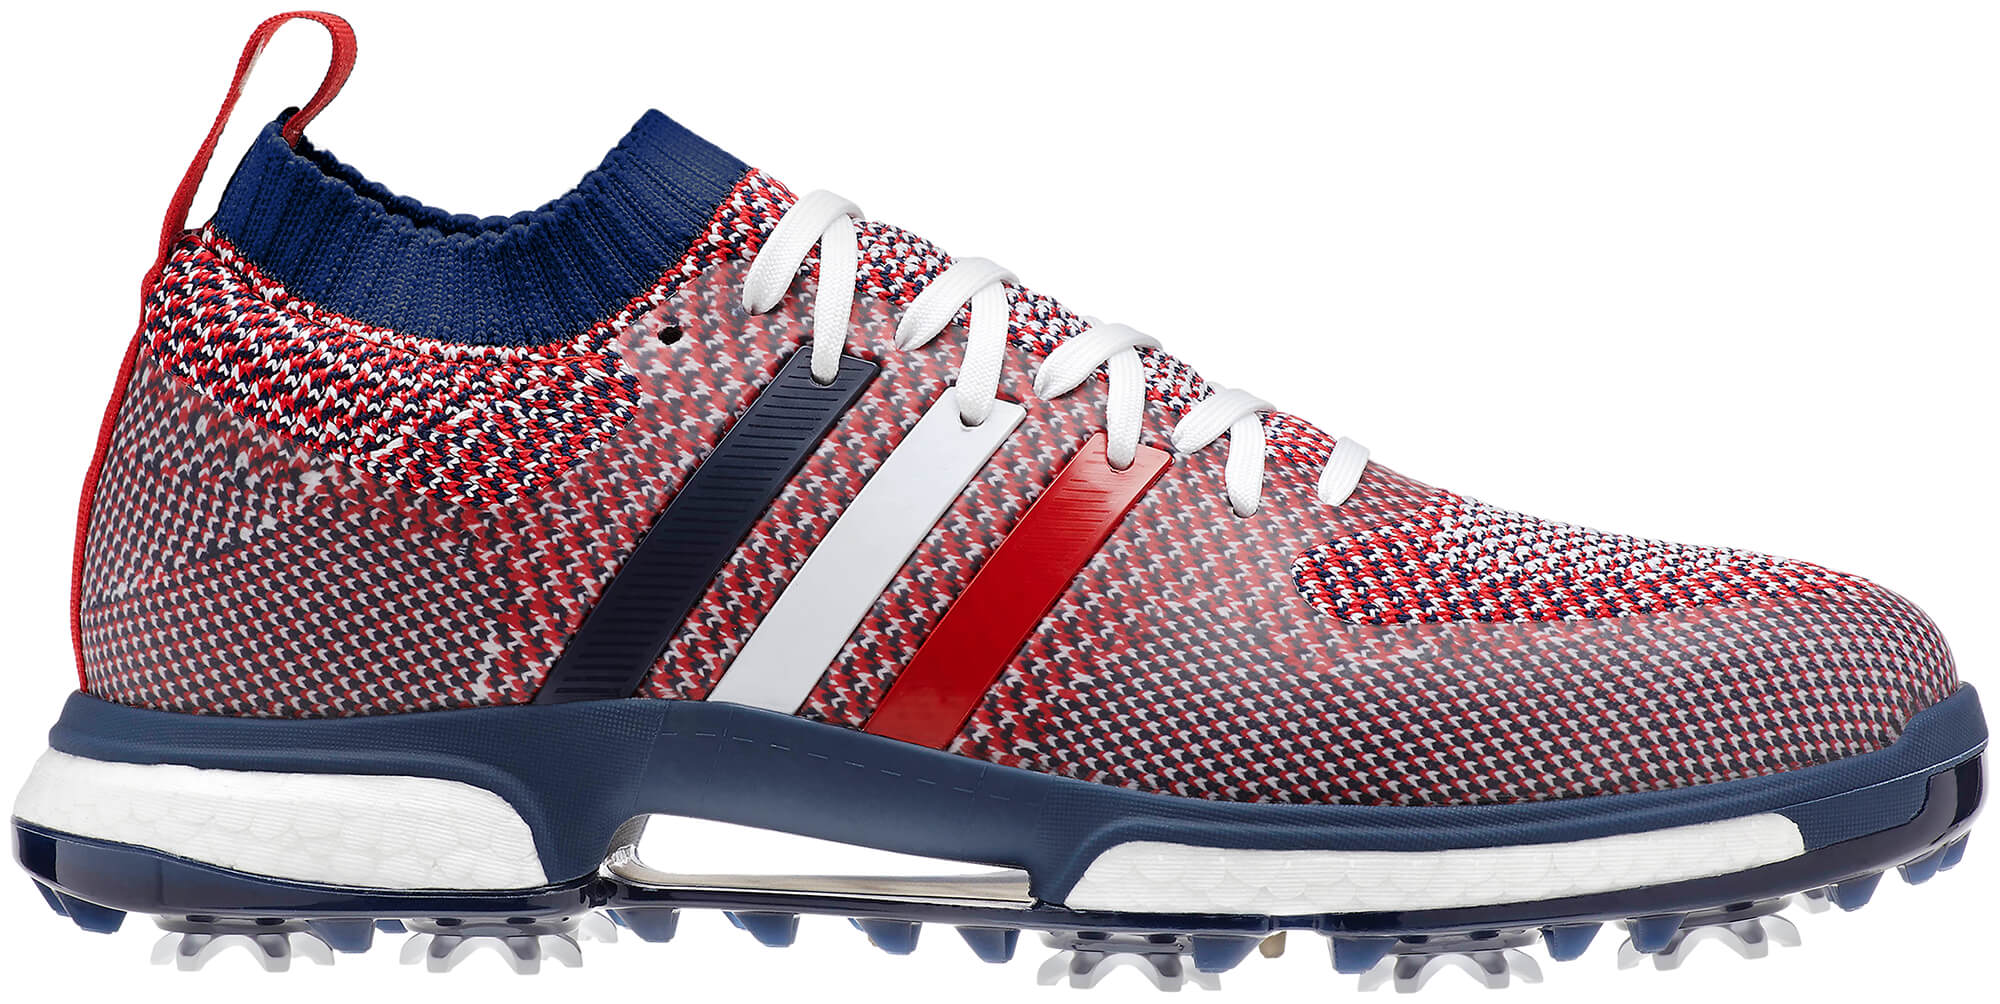 0349c1ecb Details about Adidas Tour 360 Knit Boost Golf Shoes B37772 Red Blue White  New